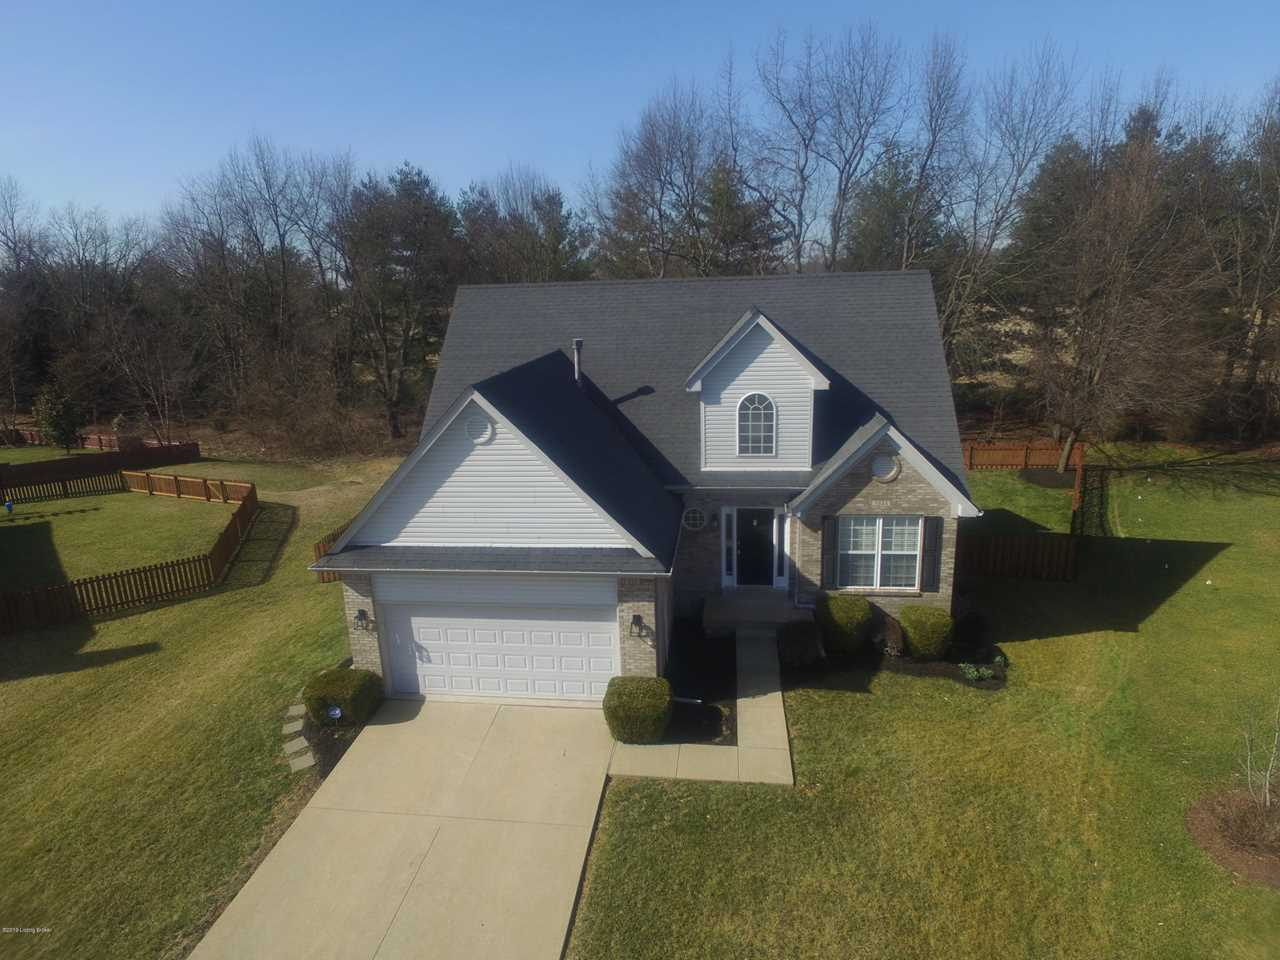 5844 Waveland Cir Prospect, KY 40059 | MLS 1526762 Photo 1